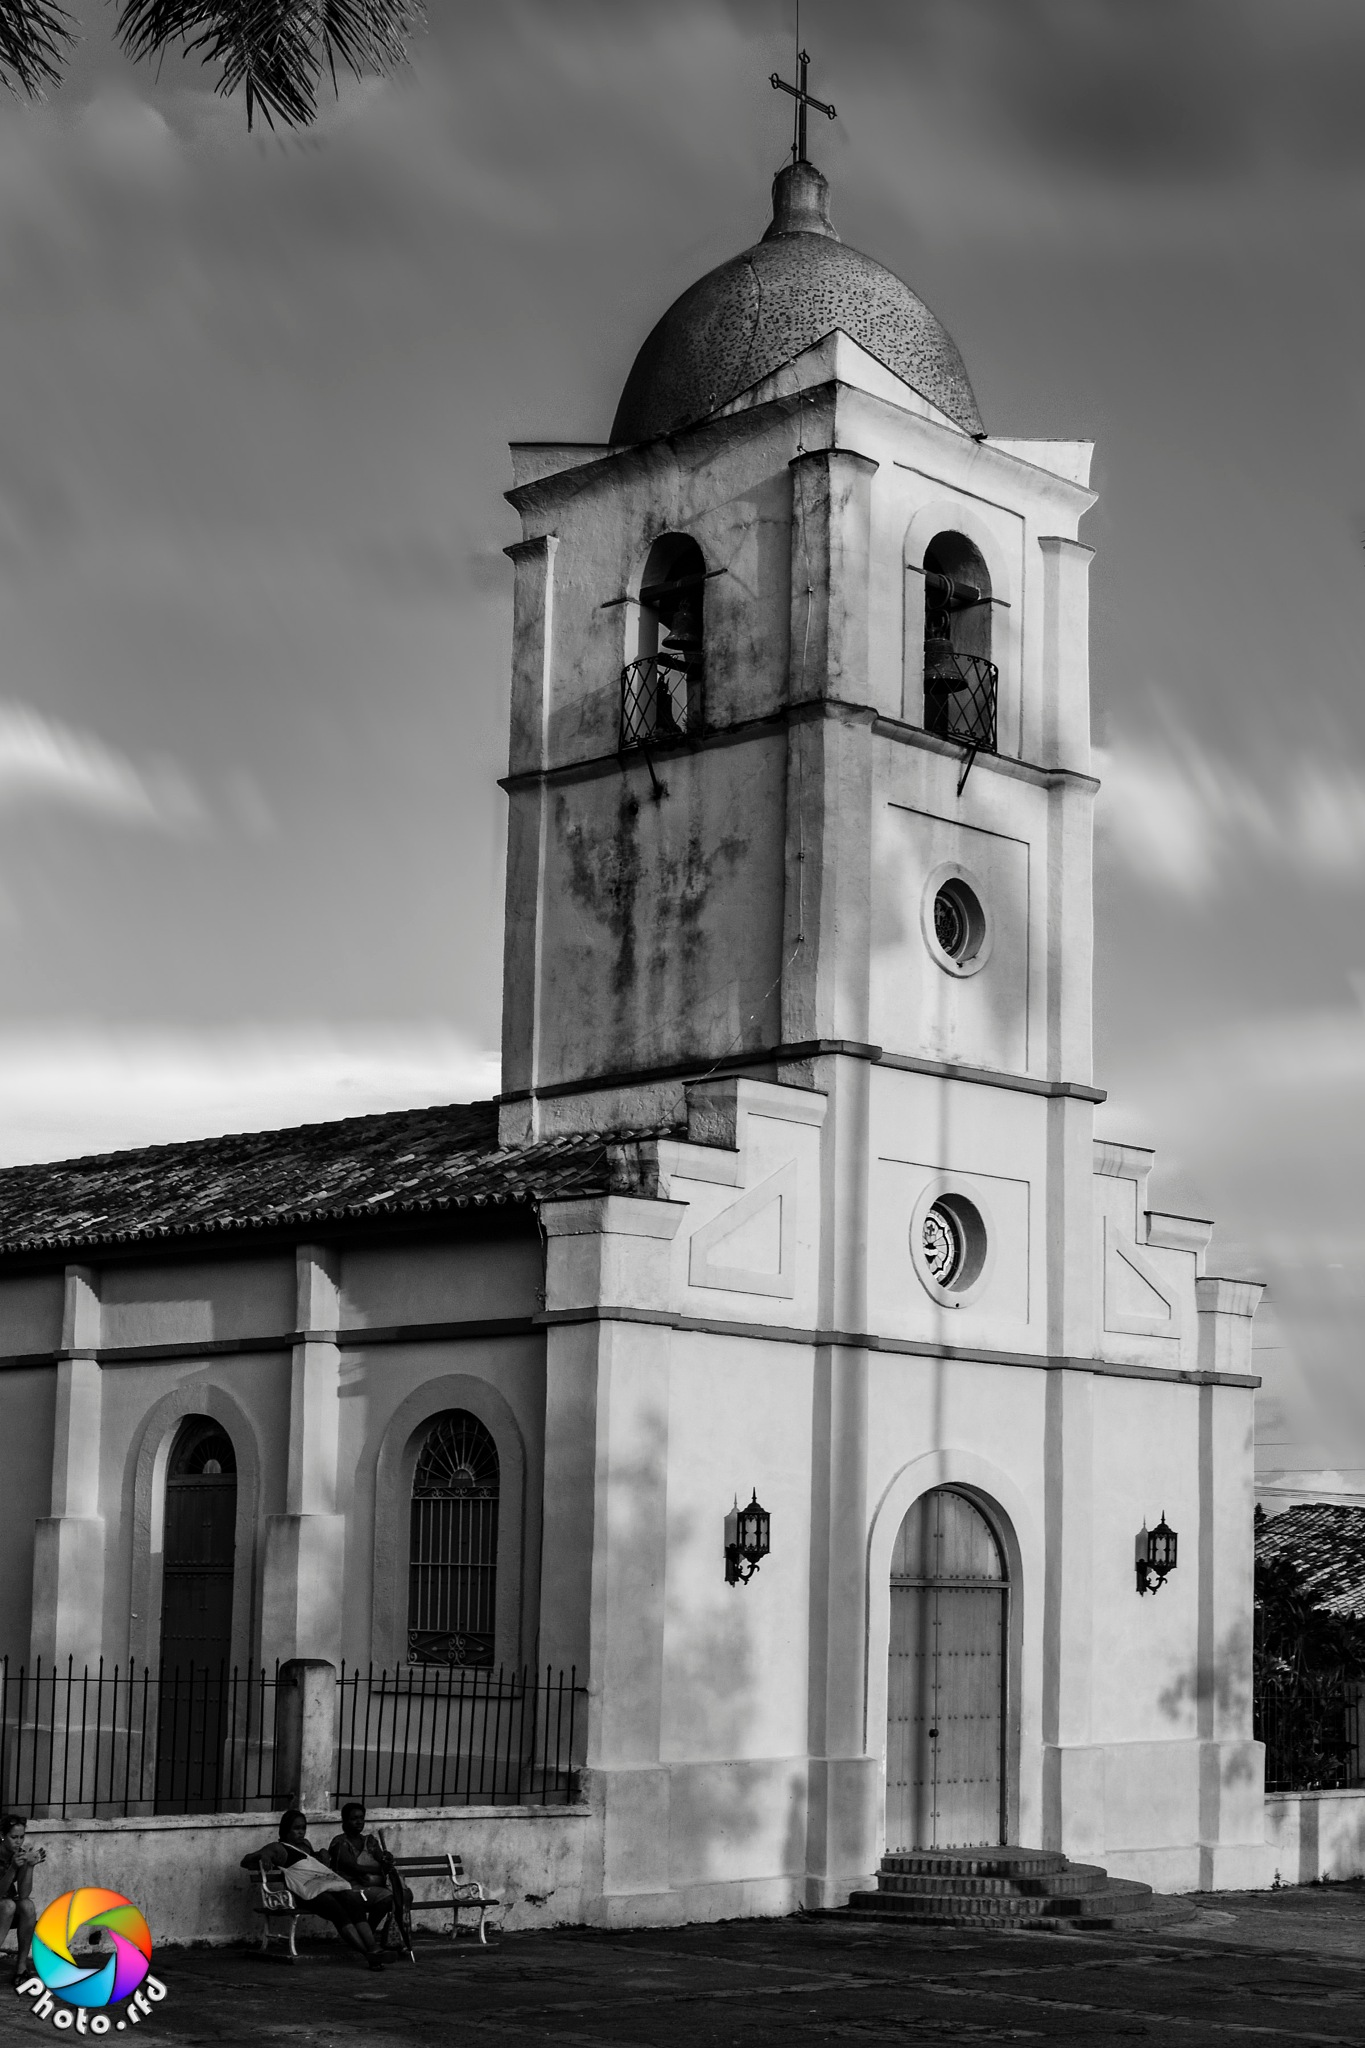 The old church by Rafael Alberto Ferro Duque